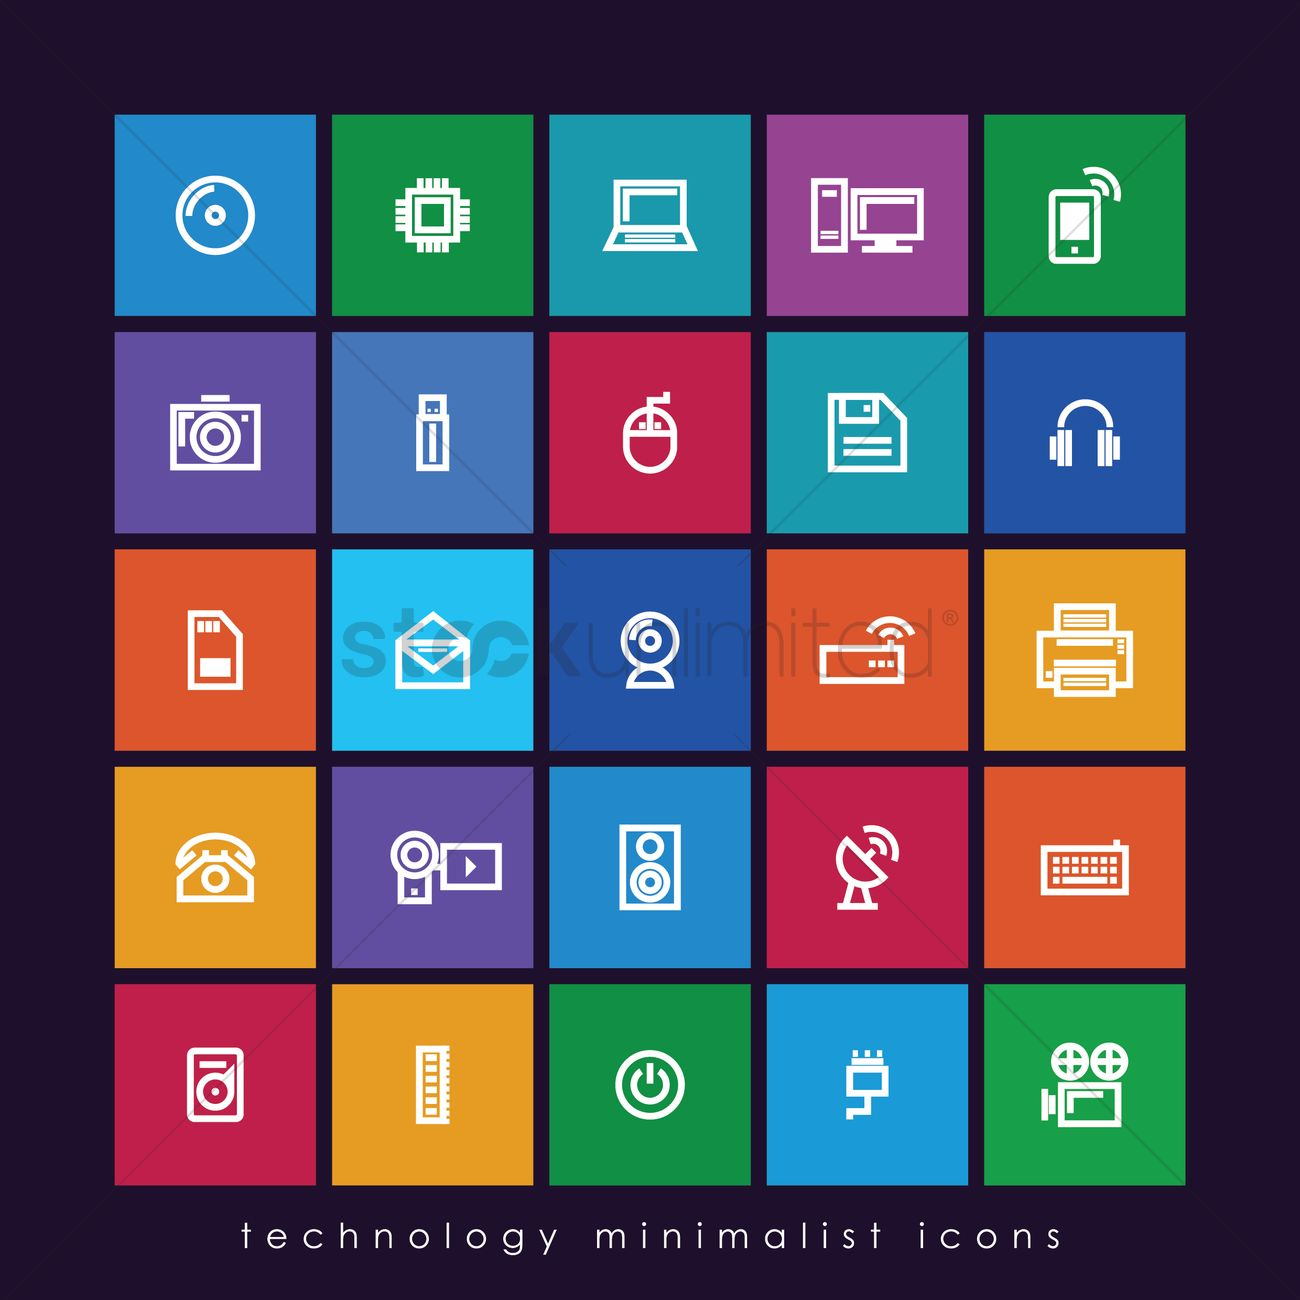 Technology minimalist icons Vector Image - 1997728